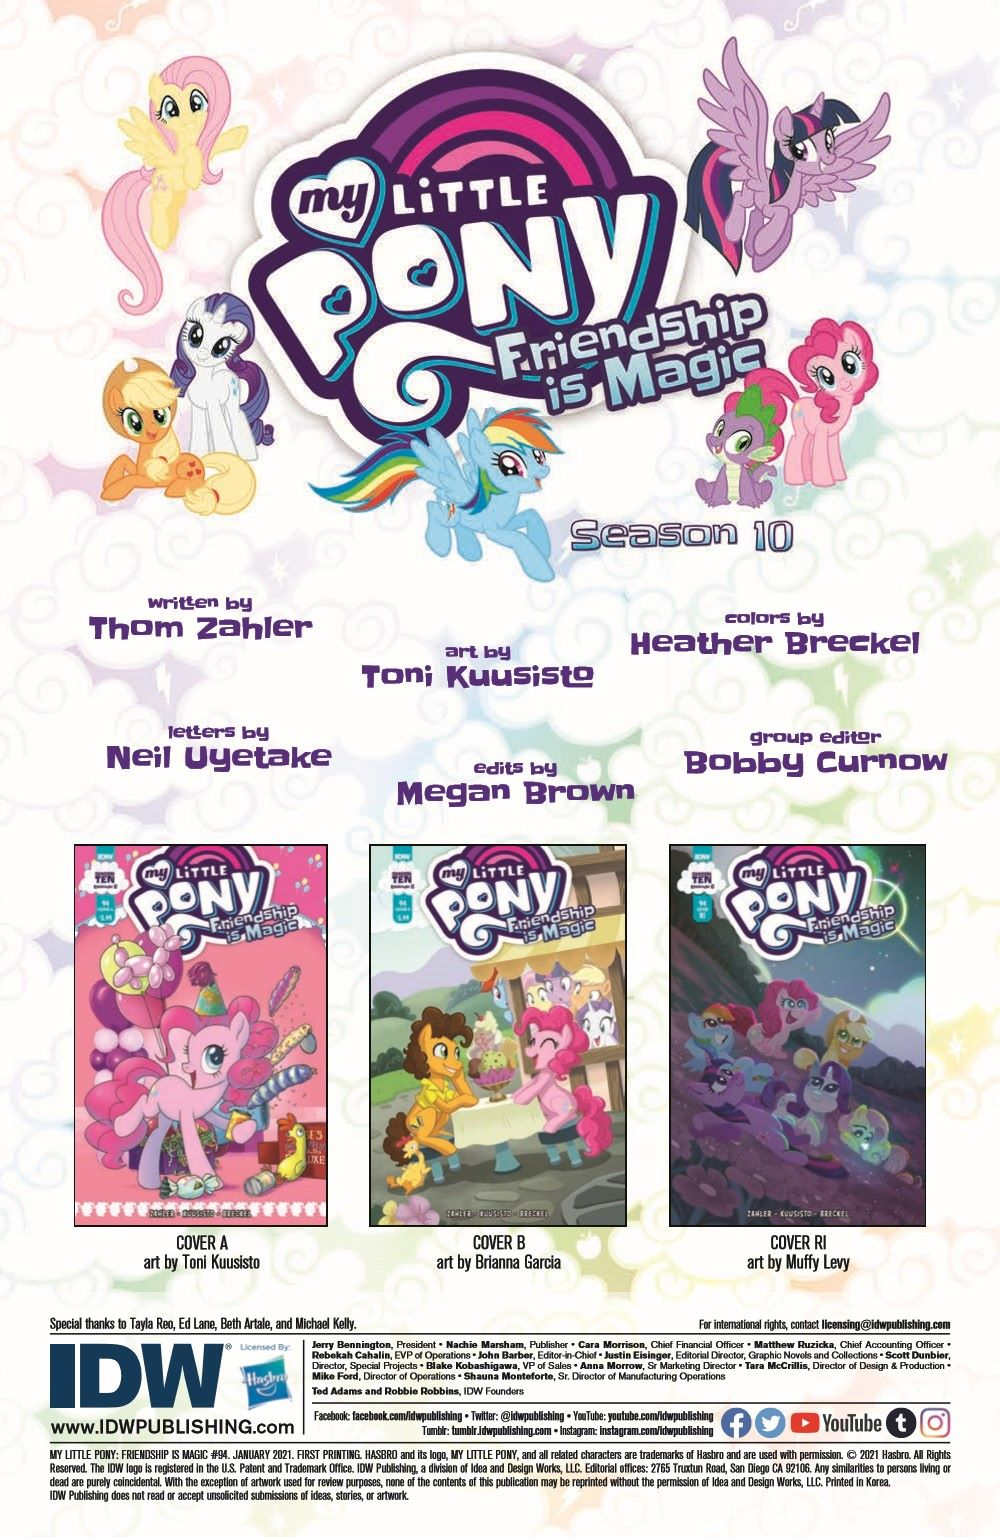 MLP94-pr-2 ComicList Previews: MY LITTLE PONY FRIENDSHIP IS MAGIC #94